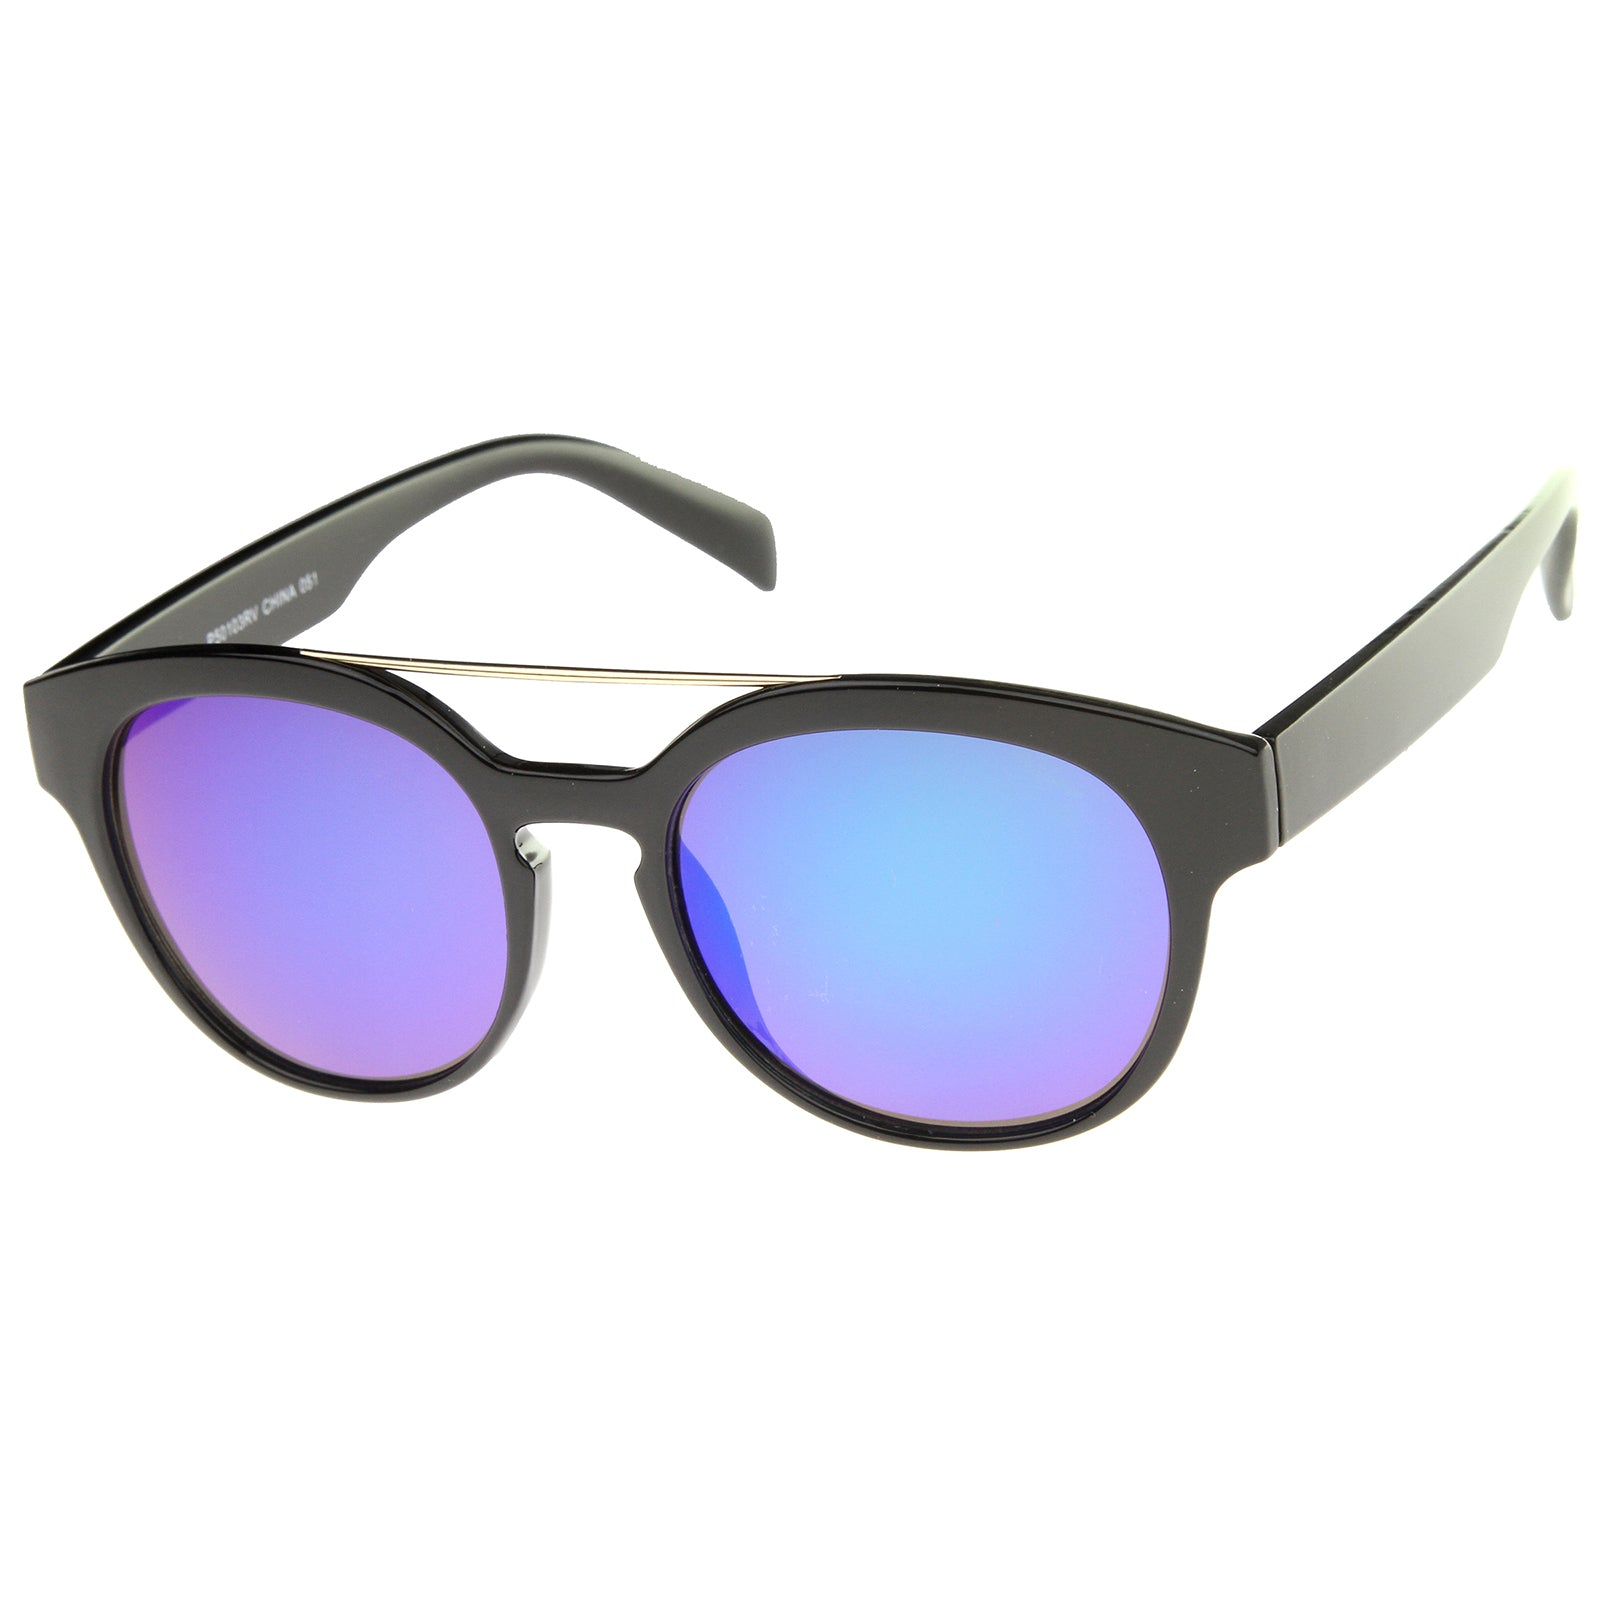 Modern Slim Metal Crossbar Iridescent Lens Horn Rimmed Sunglasses 51mm - sunglass.la - 6